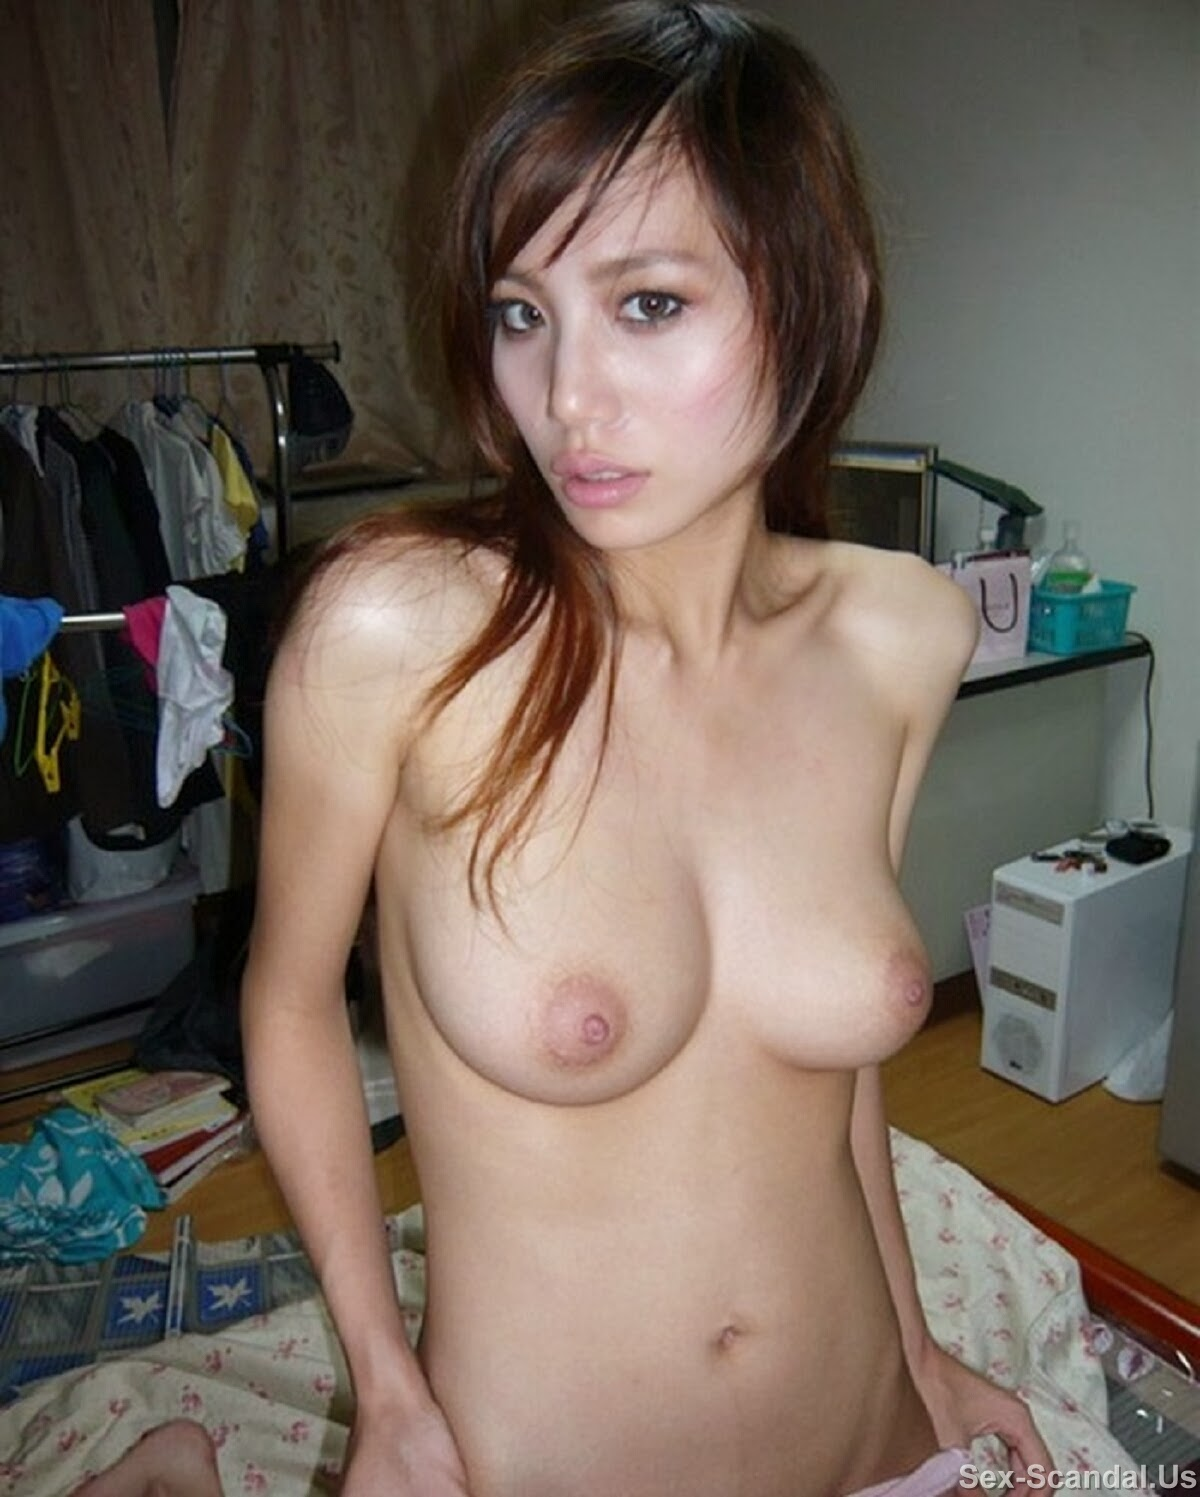 from Julius naked sexy picture taiwan girl